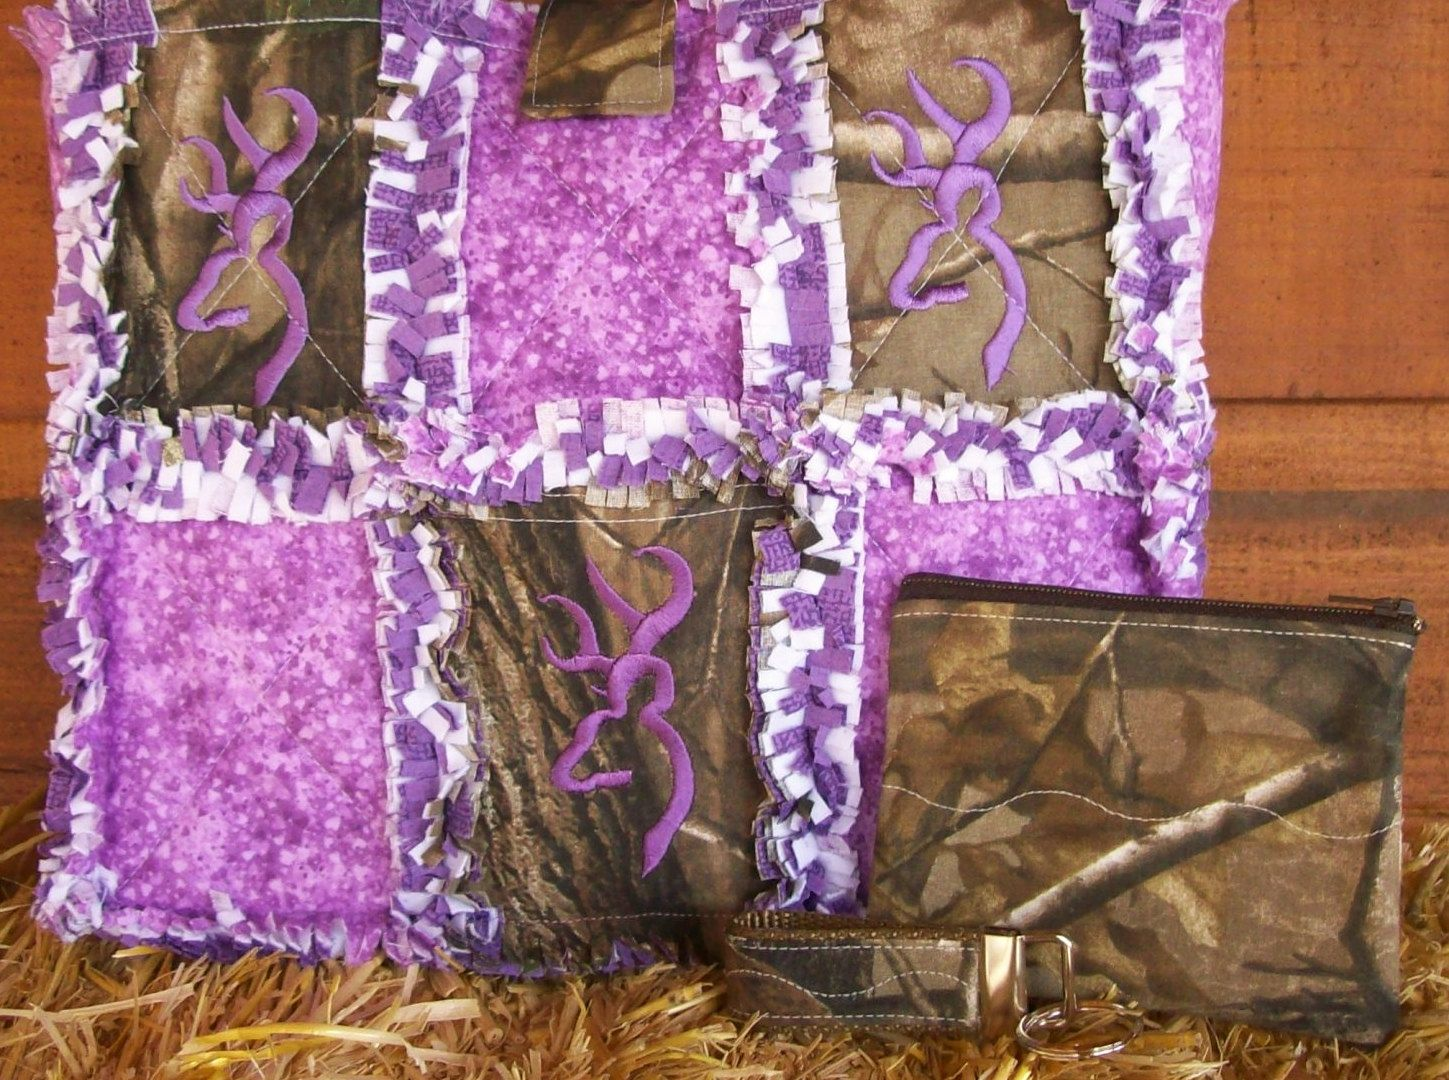 Pink camo baby bedding mossy oak - Pink Mossy Oak Camo Quilt Patterns Real Tree Purple Browning Rag Quilt Handbag Purse Tote